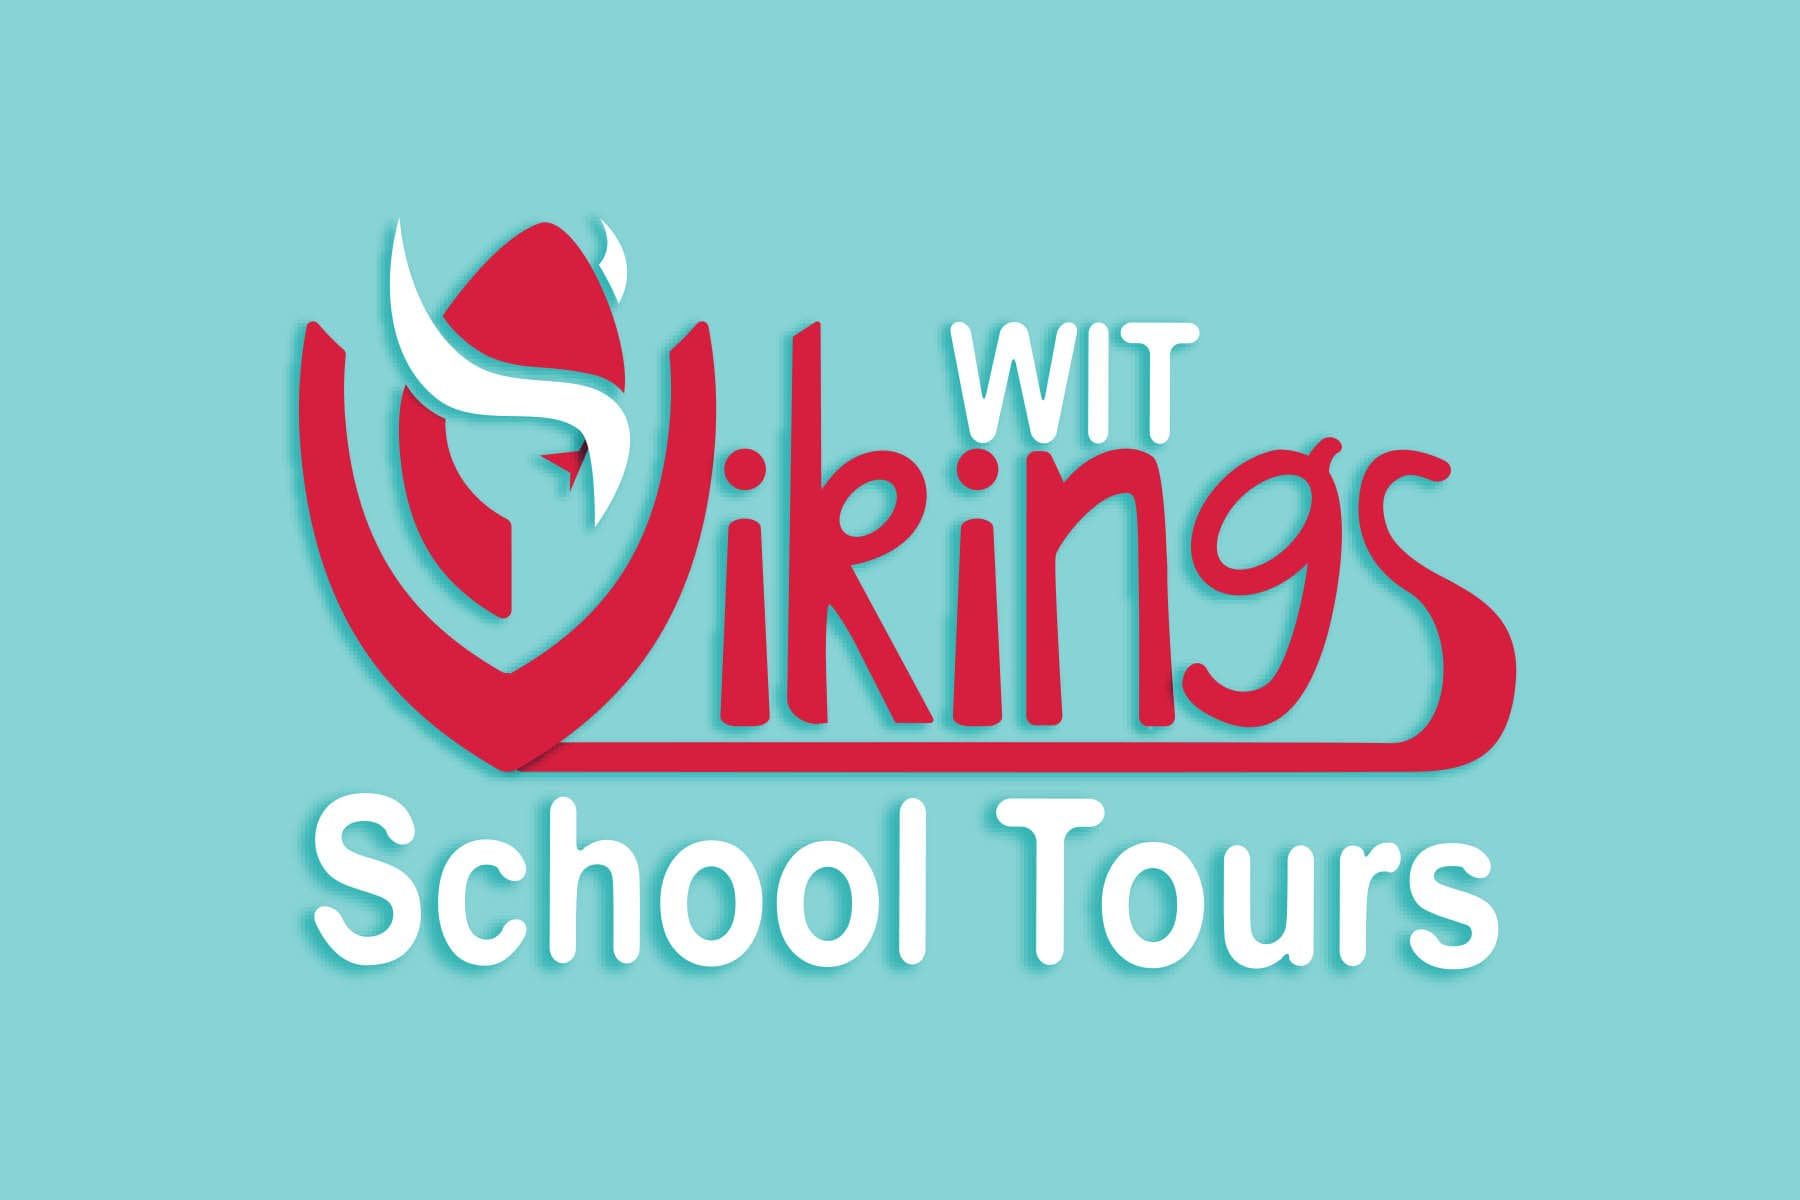 wit viking school tours